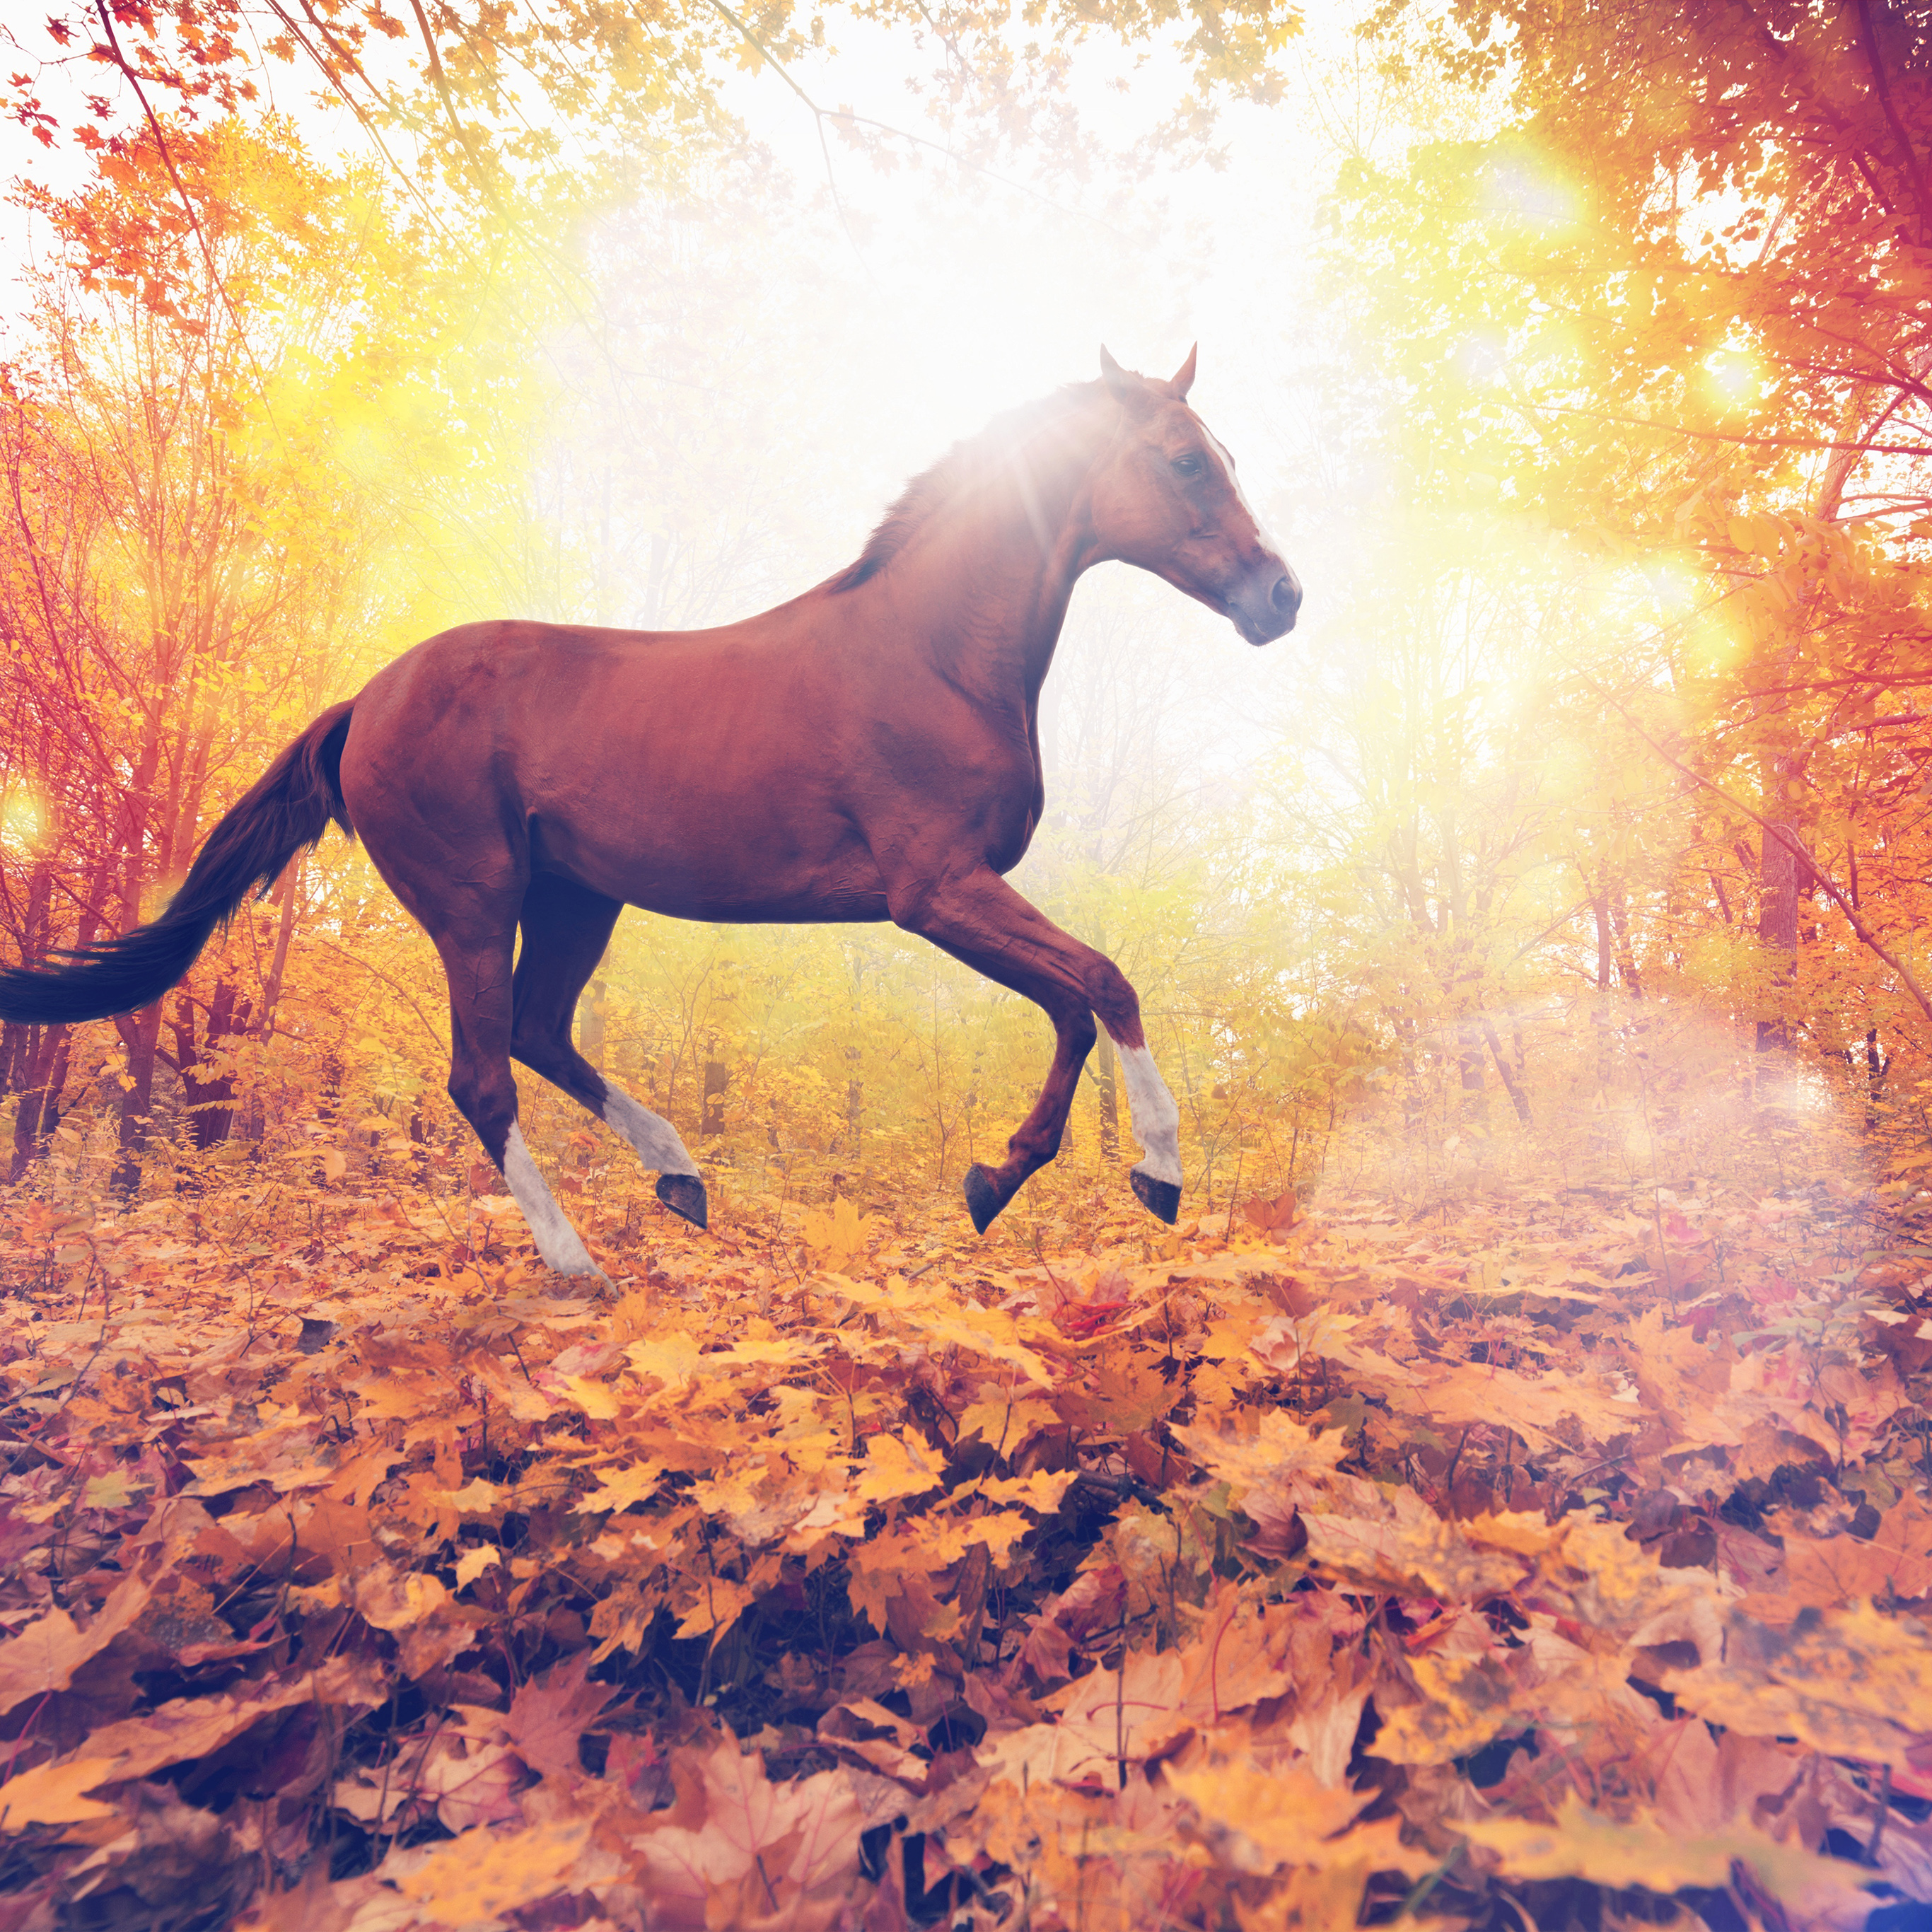 Mt31 Horse Art Animal Fall Leaf Mountain Red Flare Wallpaper